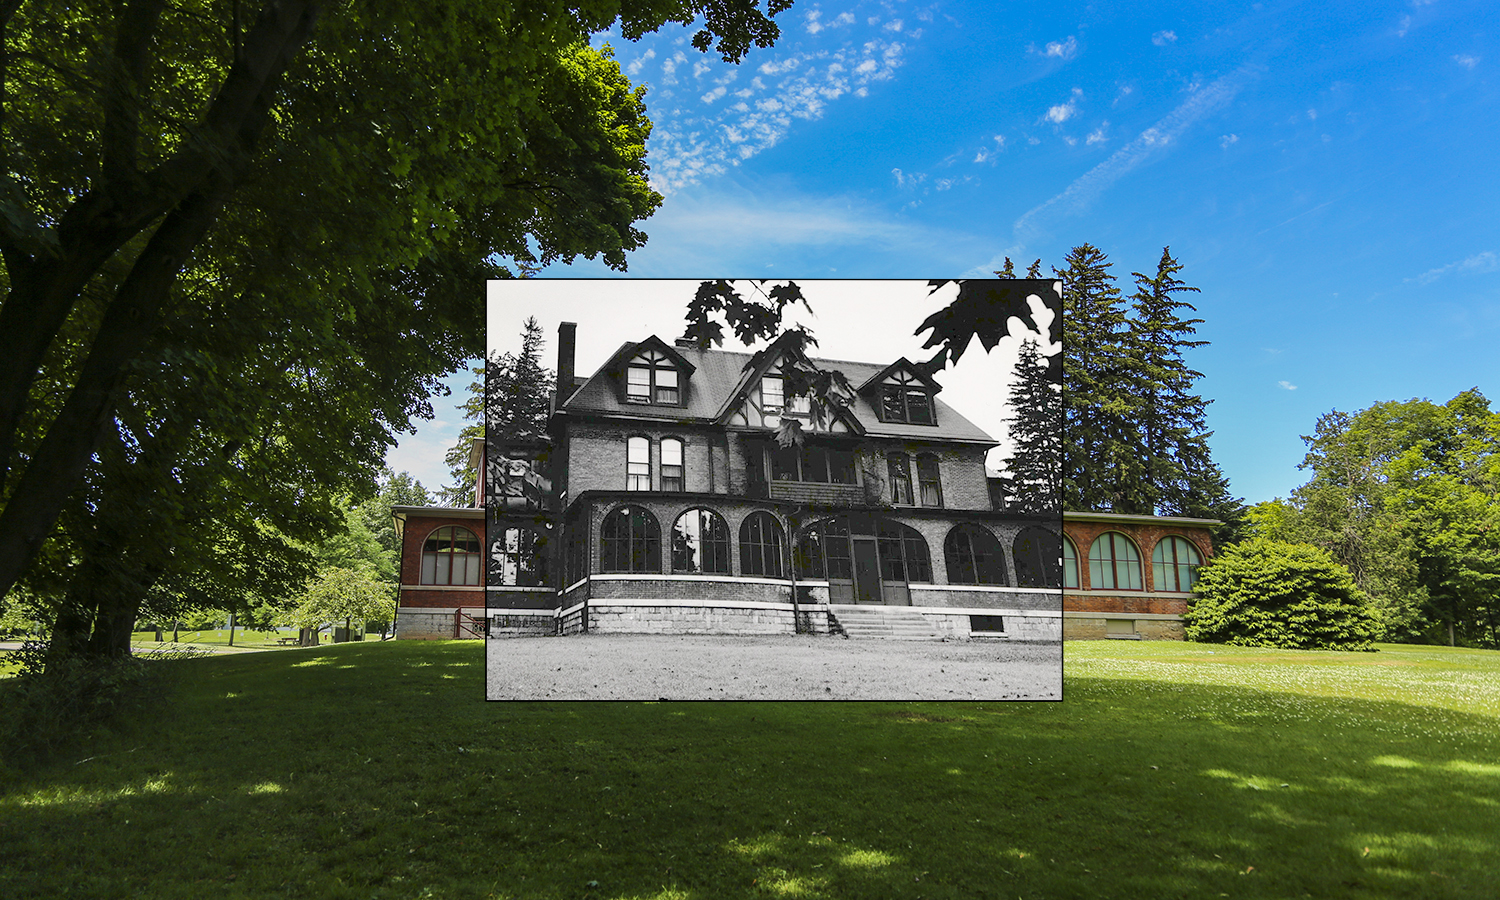 After its donation to the colleges from the Vail family, Housghton house was an all-female dorm until it's conversion into an Art and Architecture building in the 1980s.